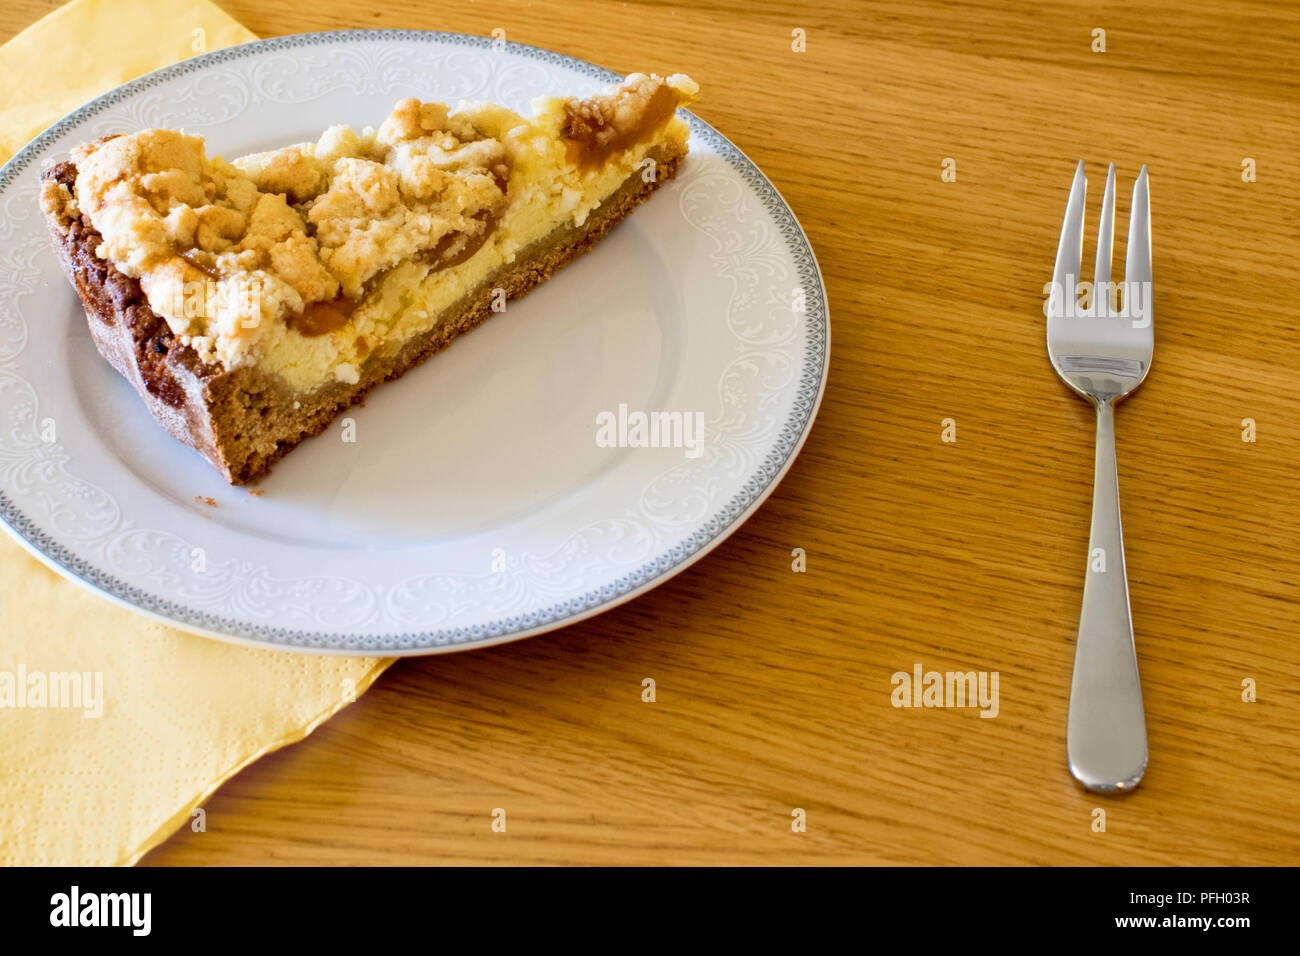 Sweet dessert on the plate with a fork - Stock Image